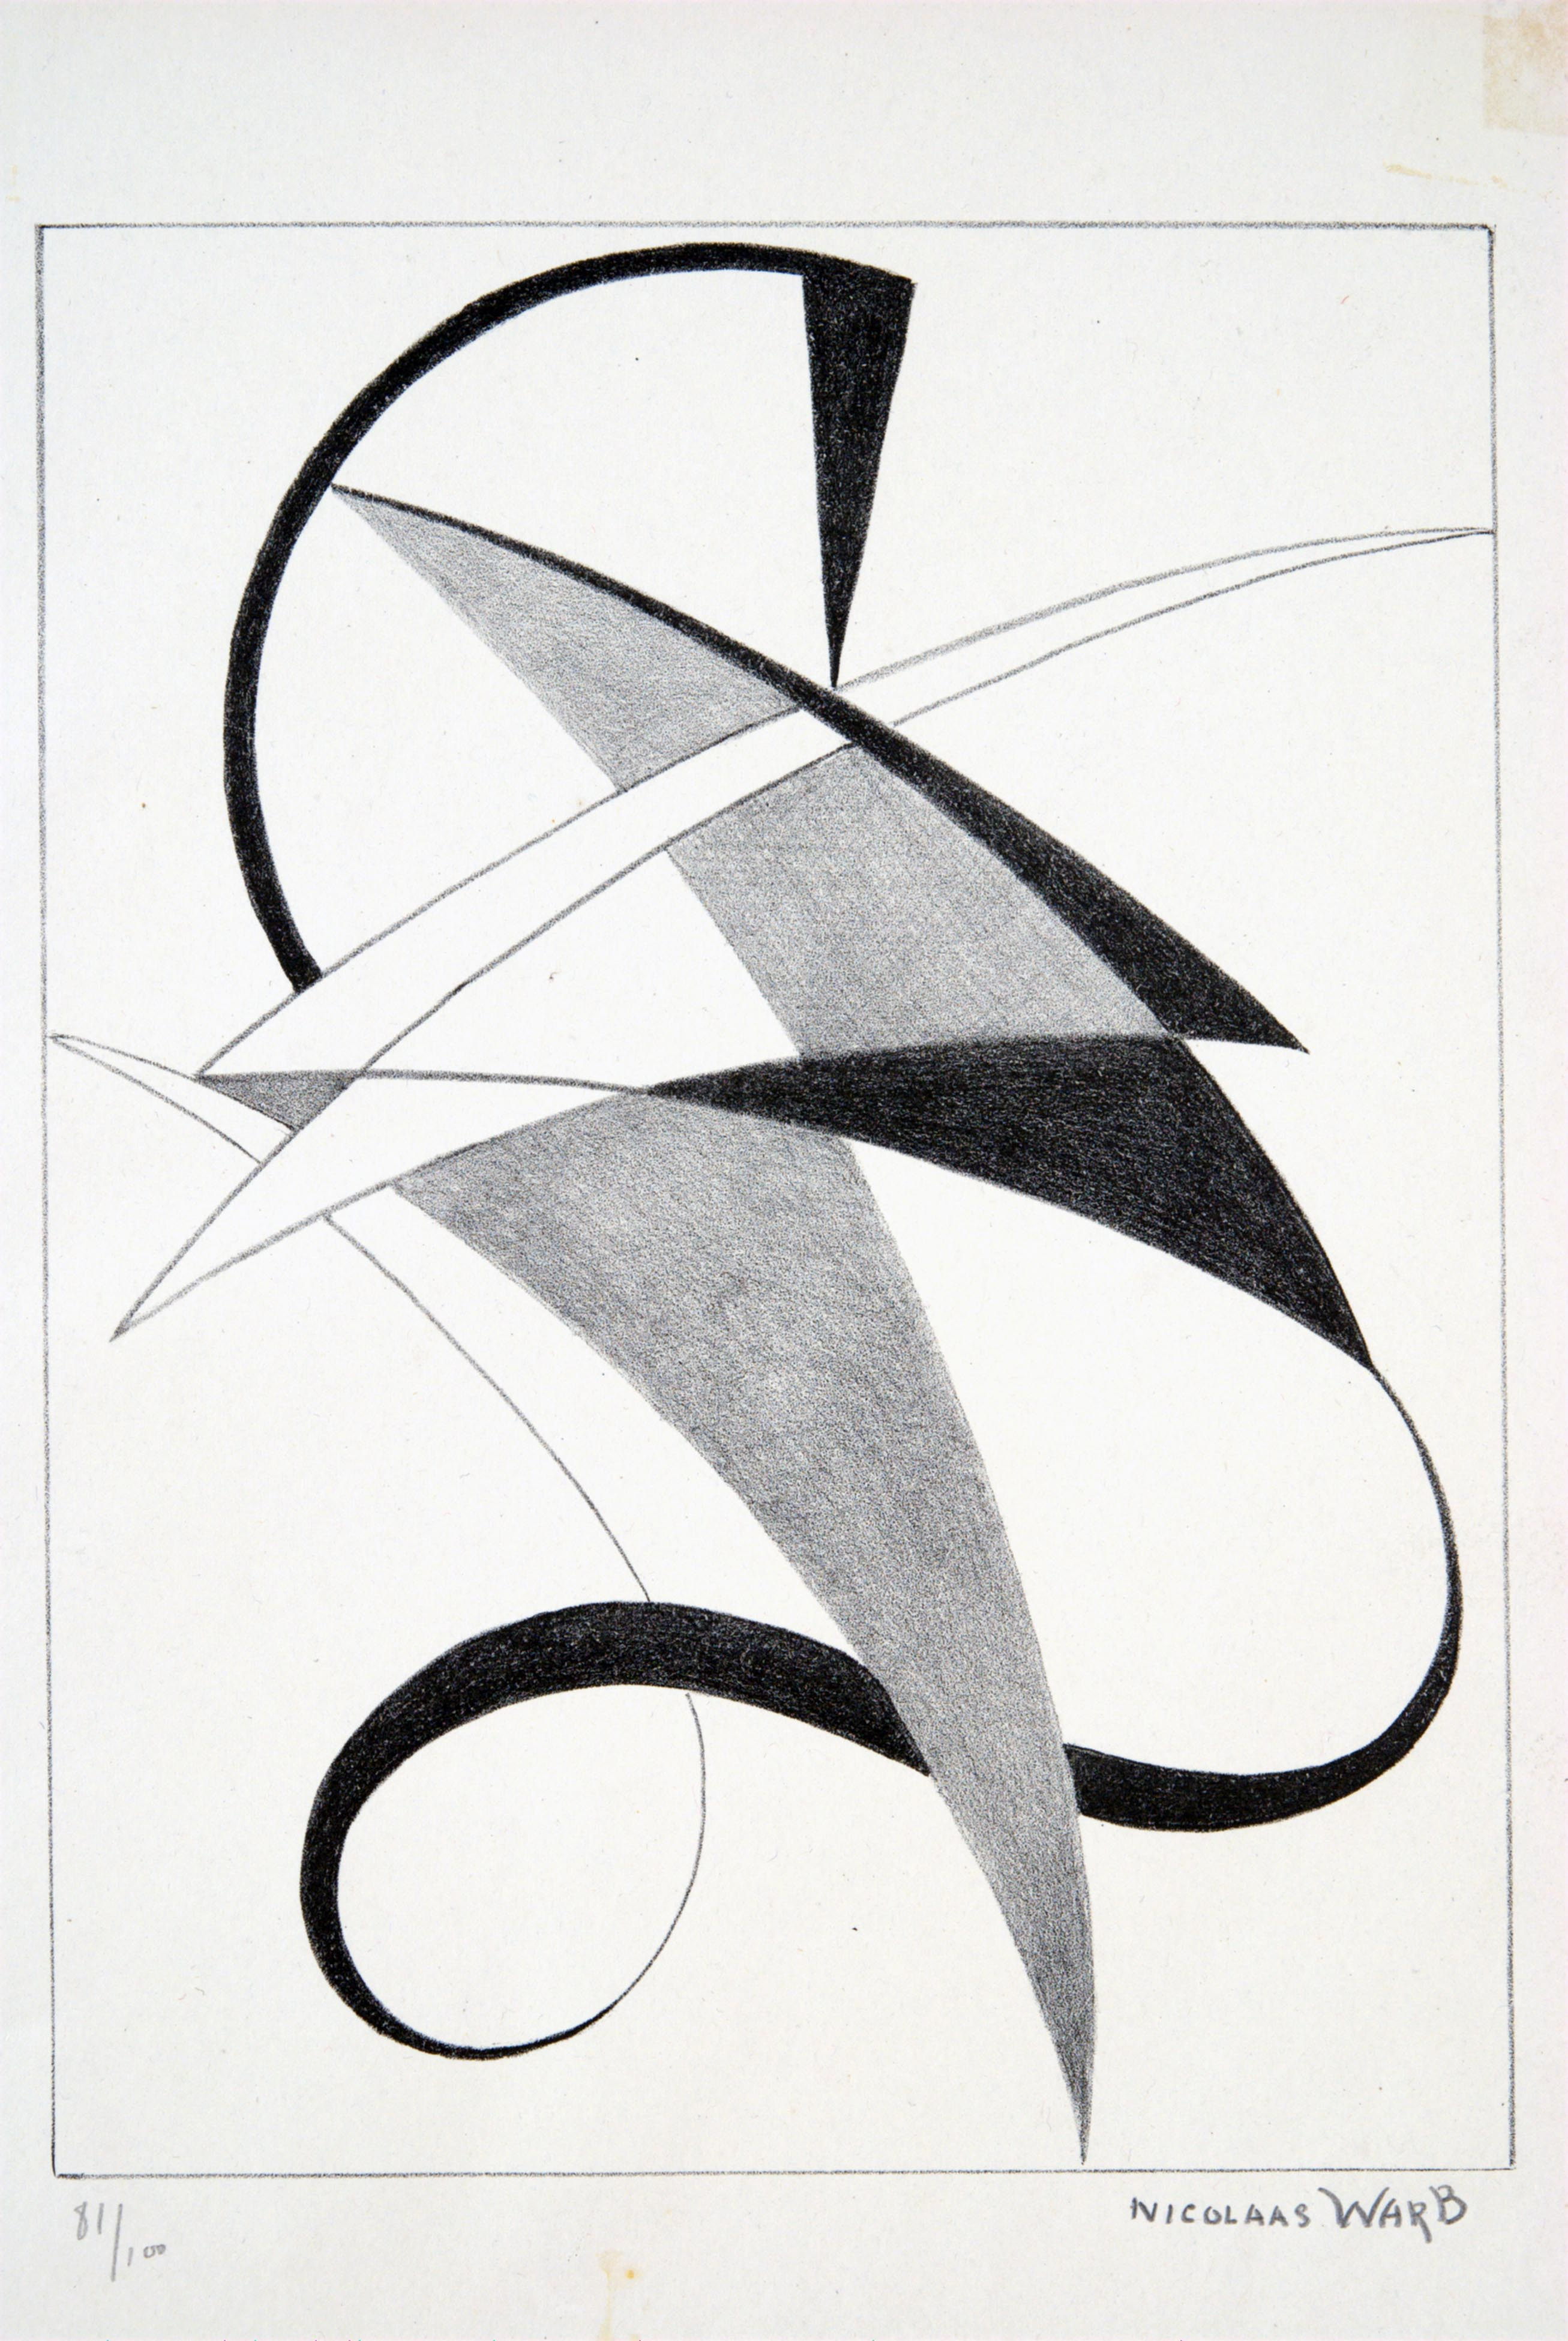 Nicolaas Warb, Abstract Composition, 1946